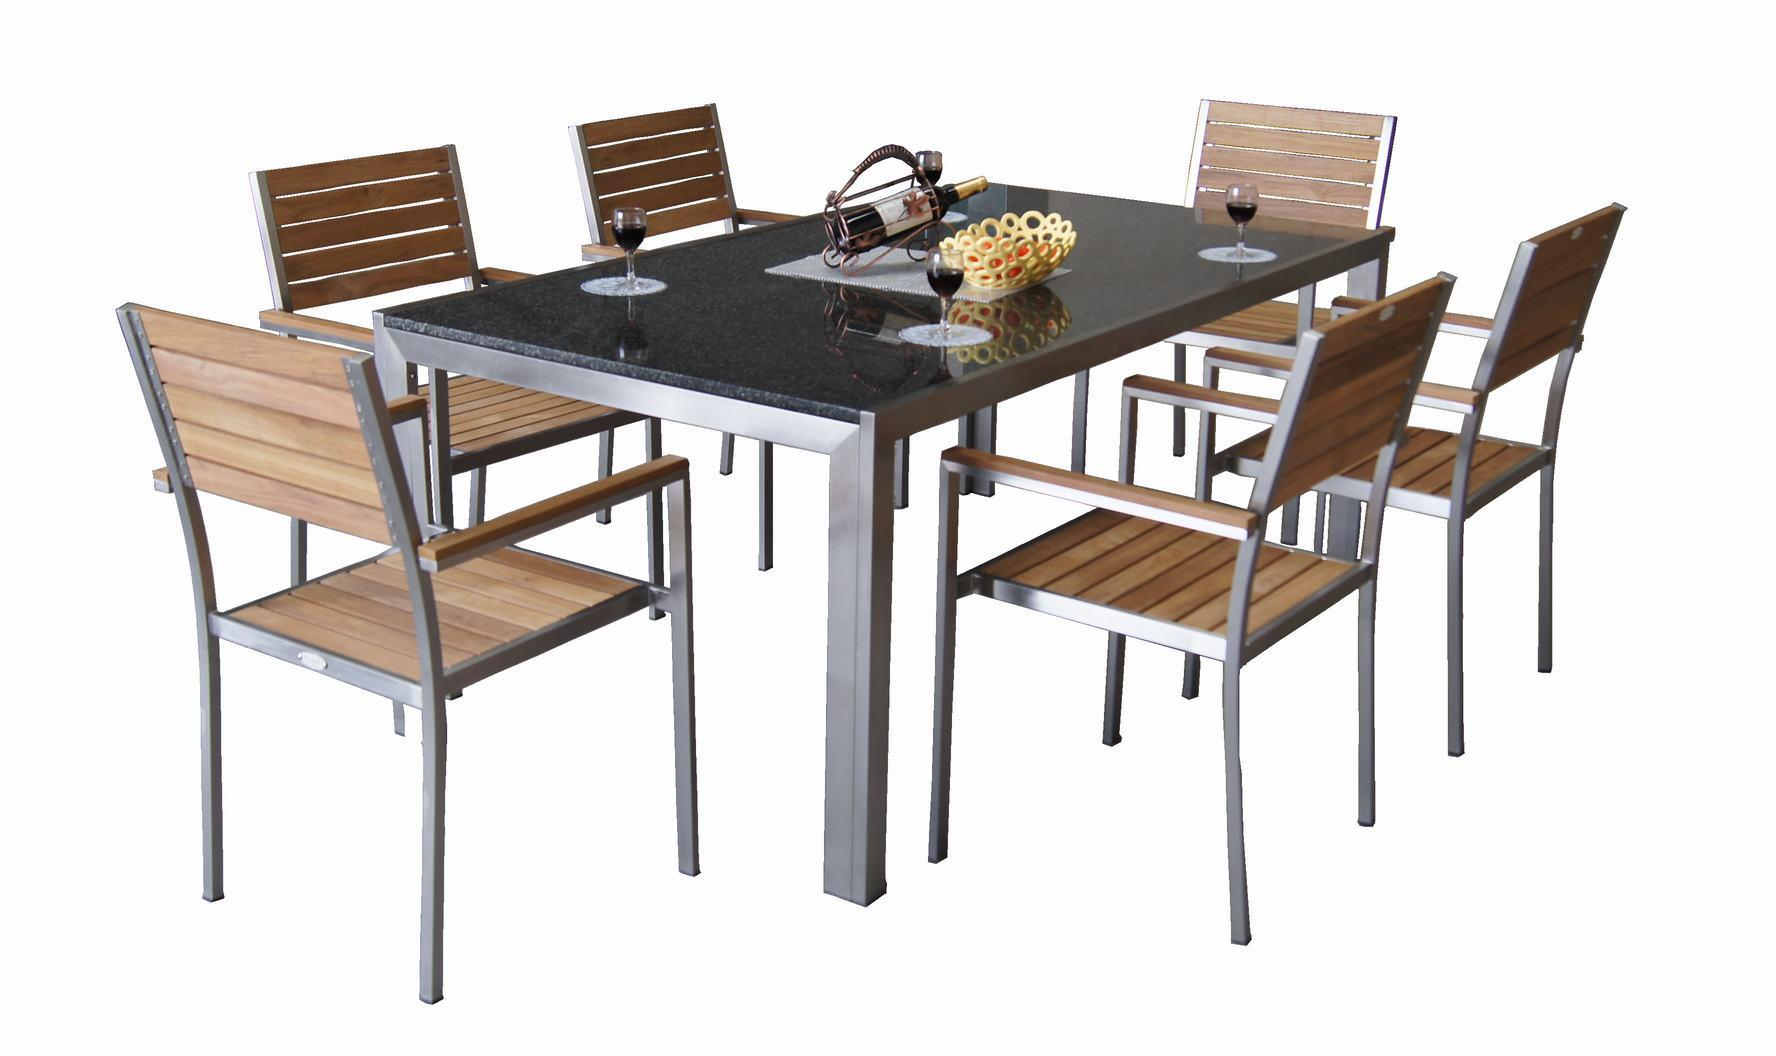 china outdoor granite and stainless steel garden furniture wf1122 06 photos pictures made